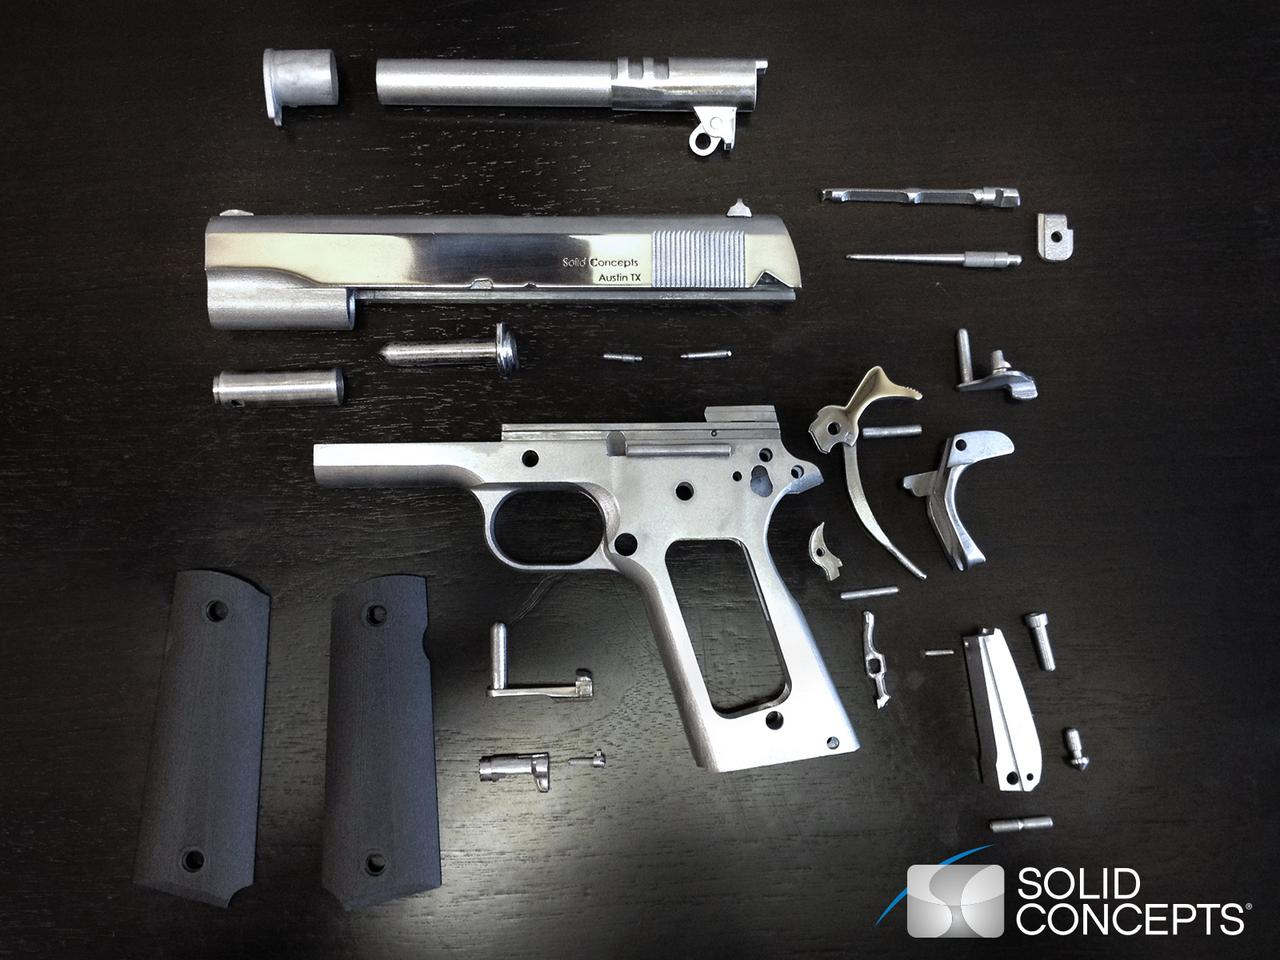 The disassembled Model 1911 45ACP showing its 3D-printed parts (Image: Solid Concepts)